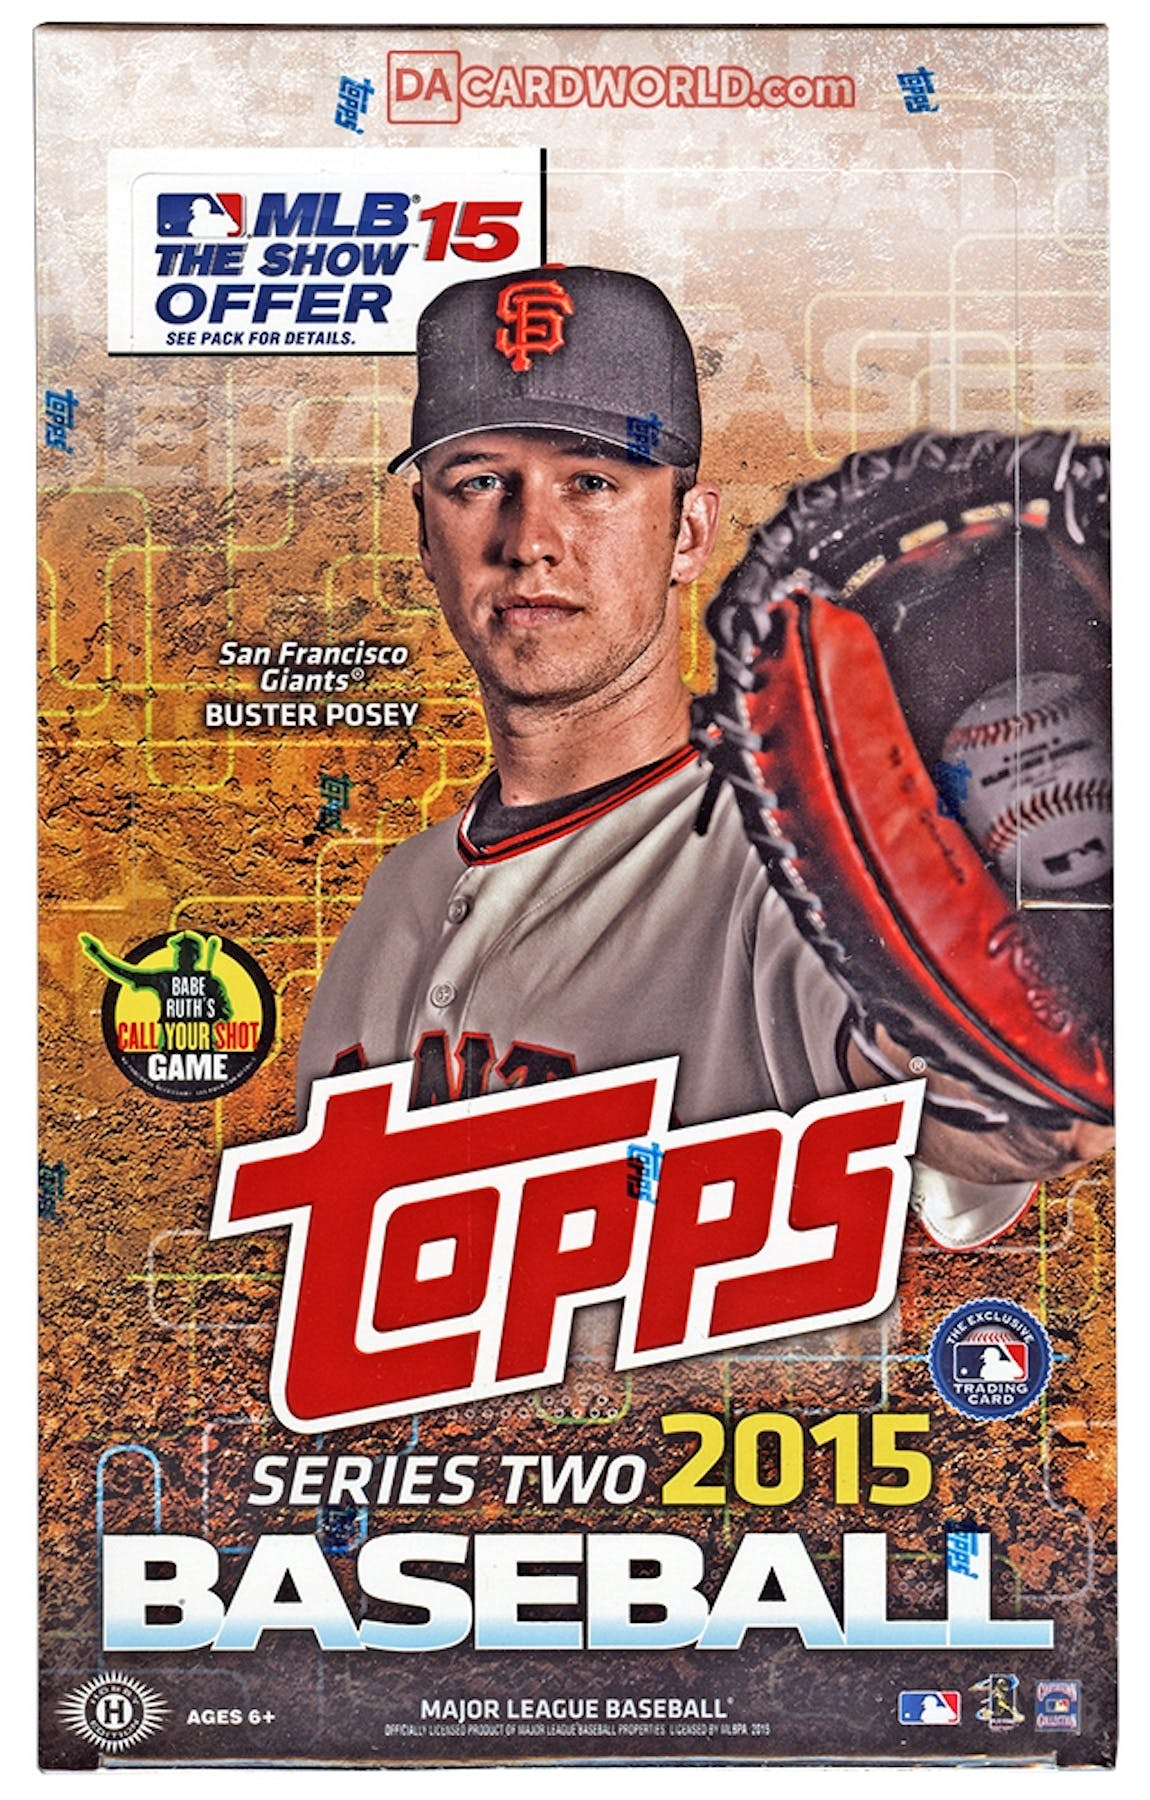 2015 Topps Series 2 Baseball Hobby Box